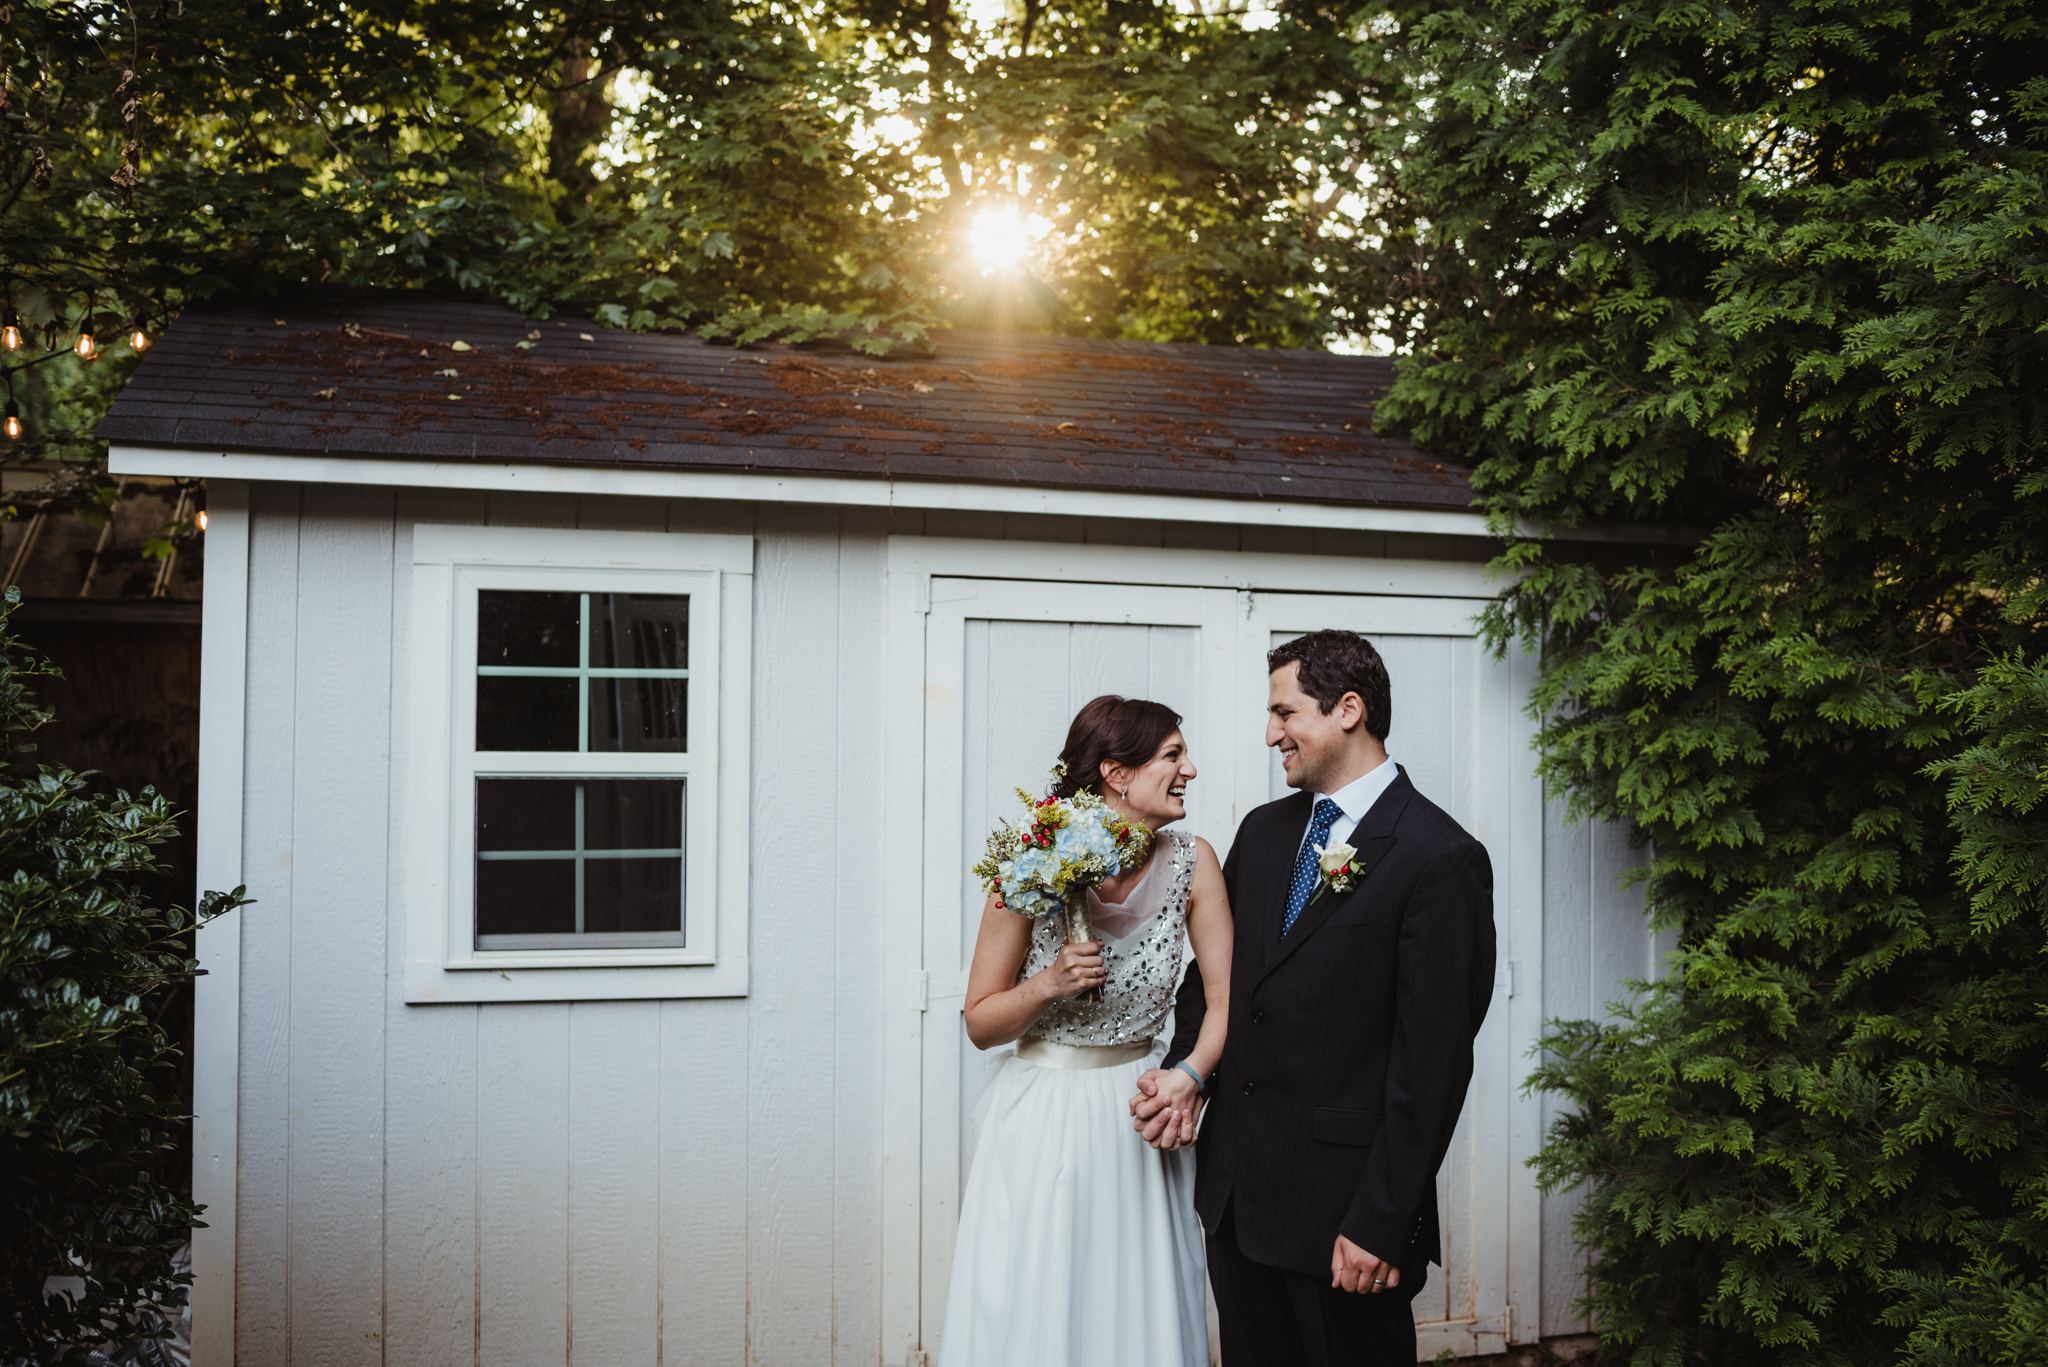 Raleigh-wedding-photographer-bride-and-groom-portraits-intimate-backyard-rose-trail-images.jpg